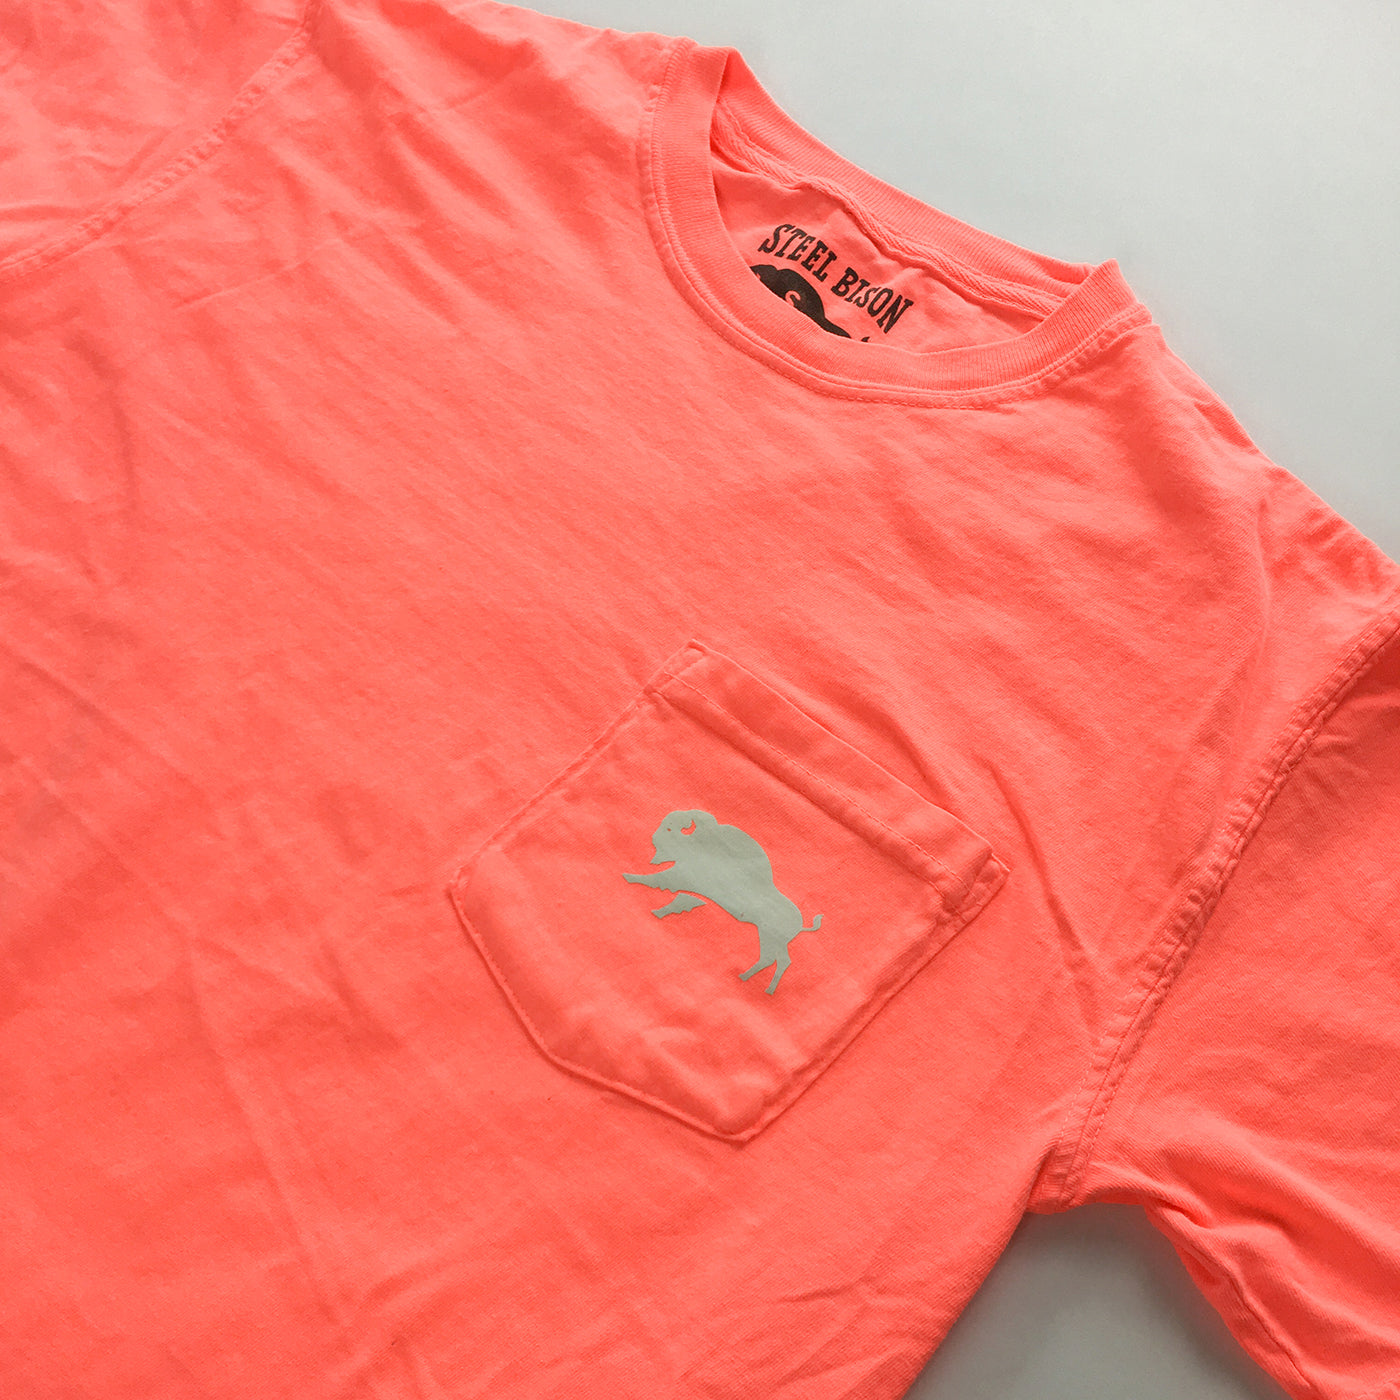 LIMITED EDTION: Bison Logo - Heavy Cotton Pocket T-shirt (Neon Coral)